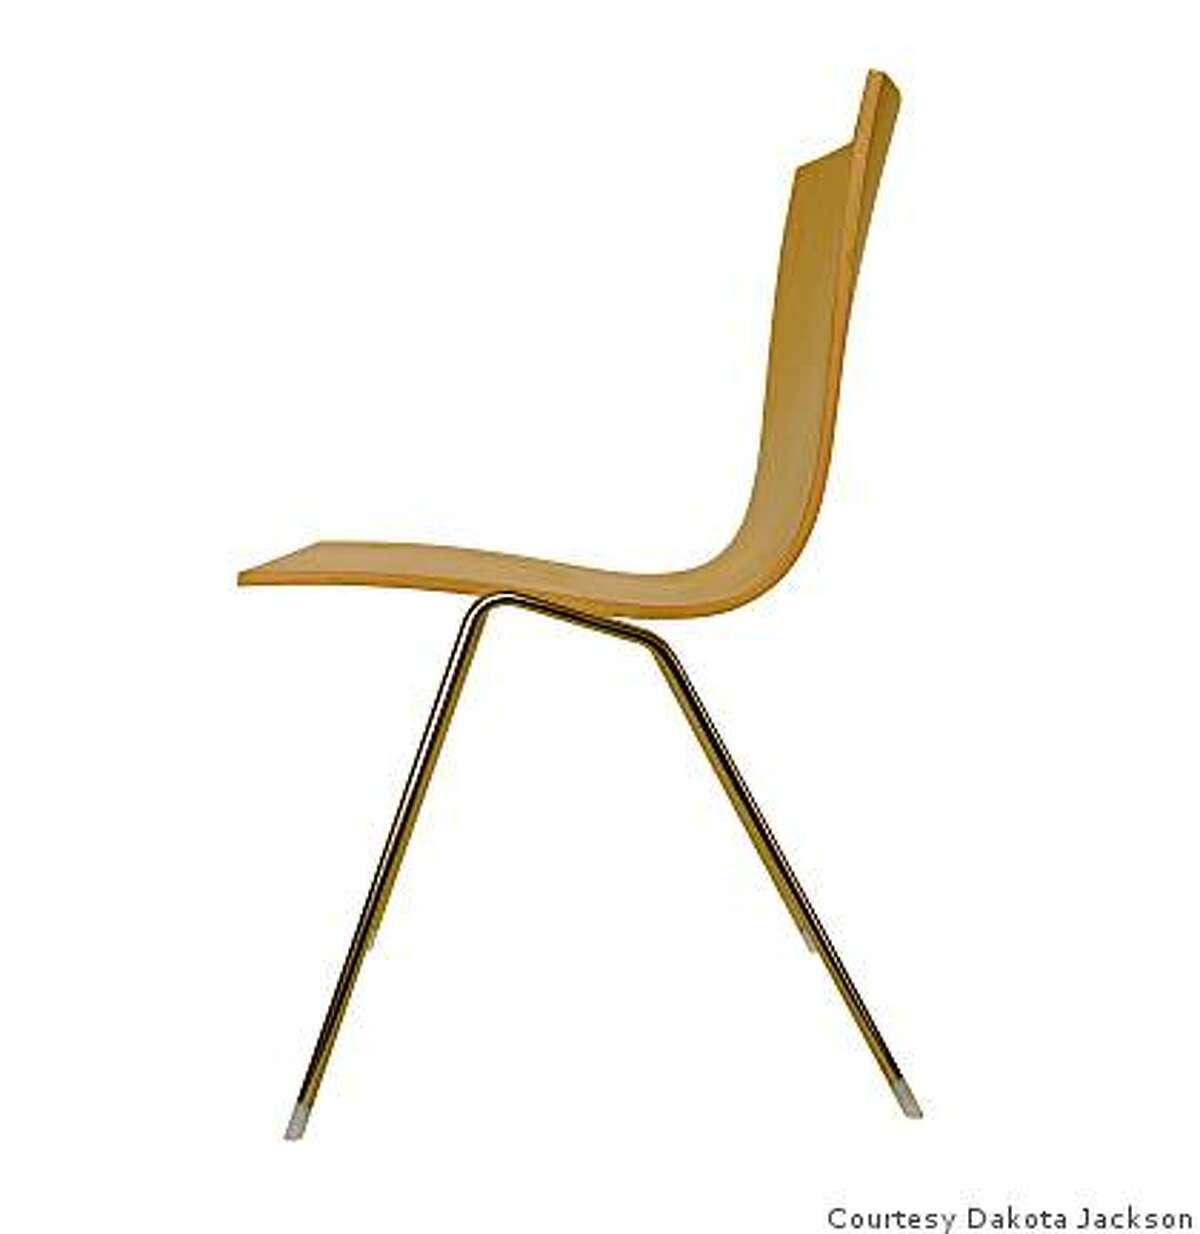 Tango chair made of molded plywood and stainless steel, was designed by Dakota Jackson